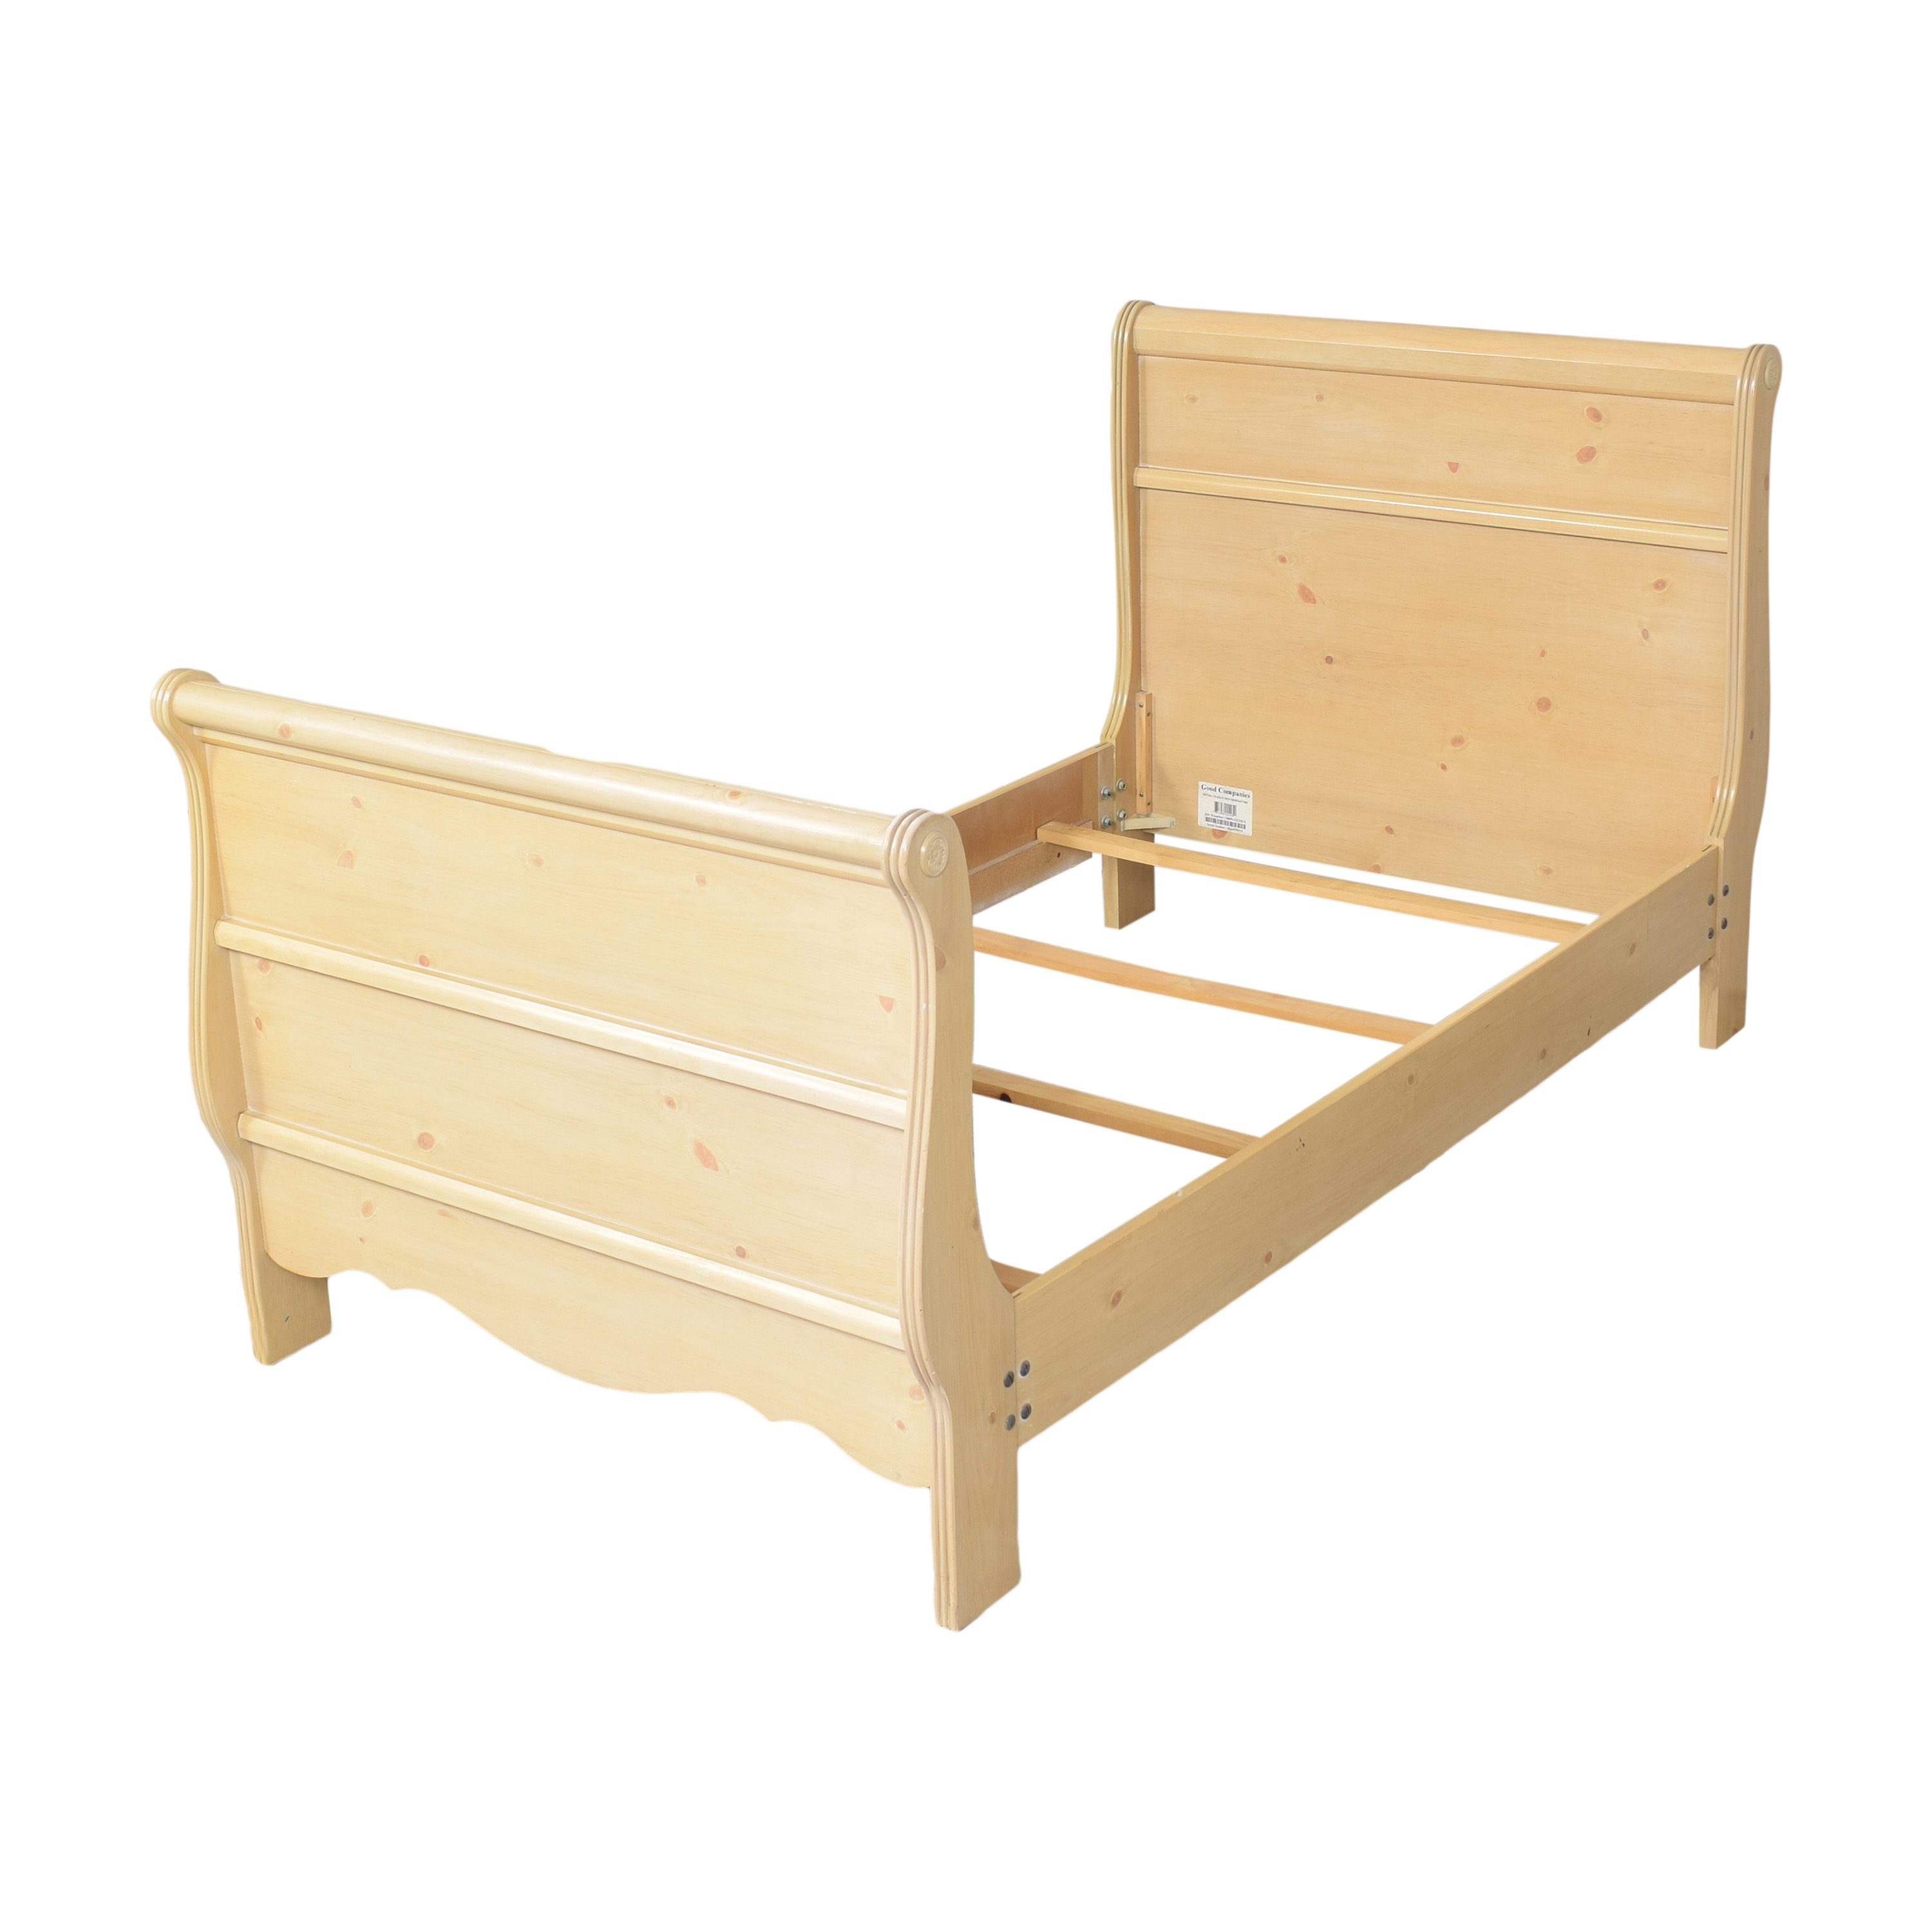 buy A-America Wood Furniture Twin Sleigh Bed A-America Wood Furniture Beds